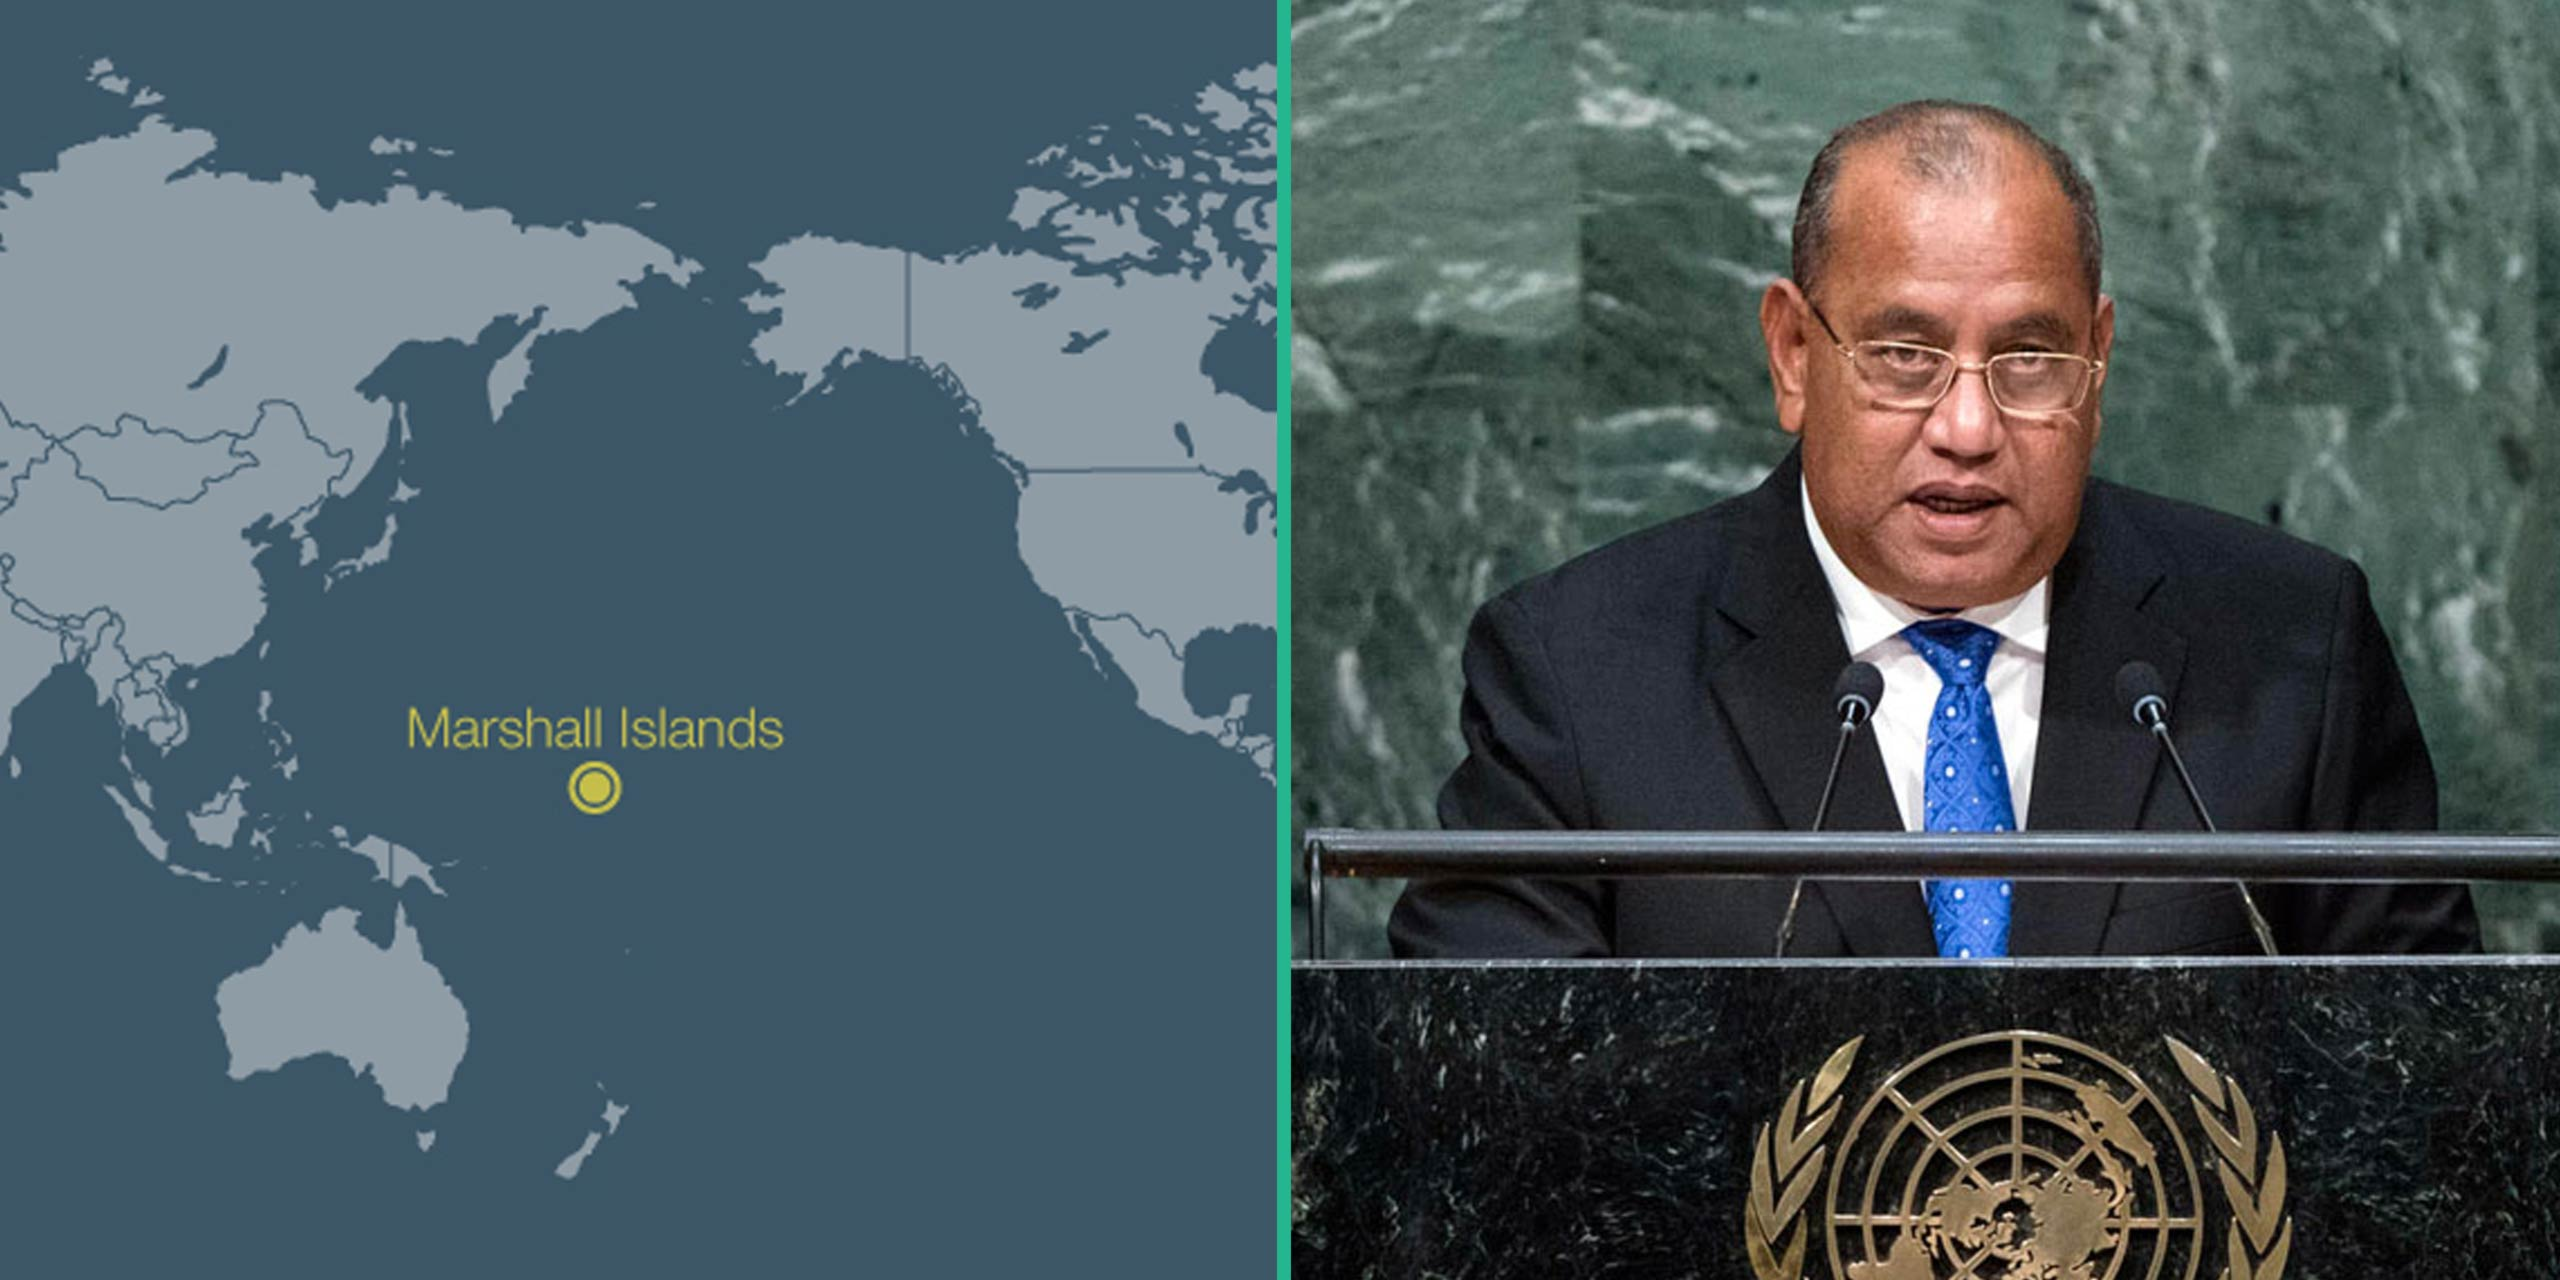 http://s12982.pcdn.co/wp-content/uploads/2014/04/independent-diplomat-sl2.jpg